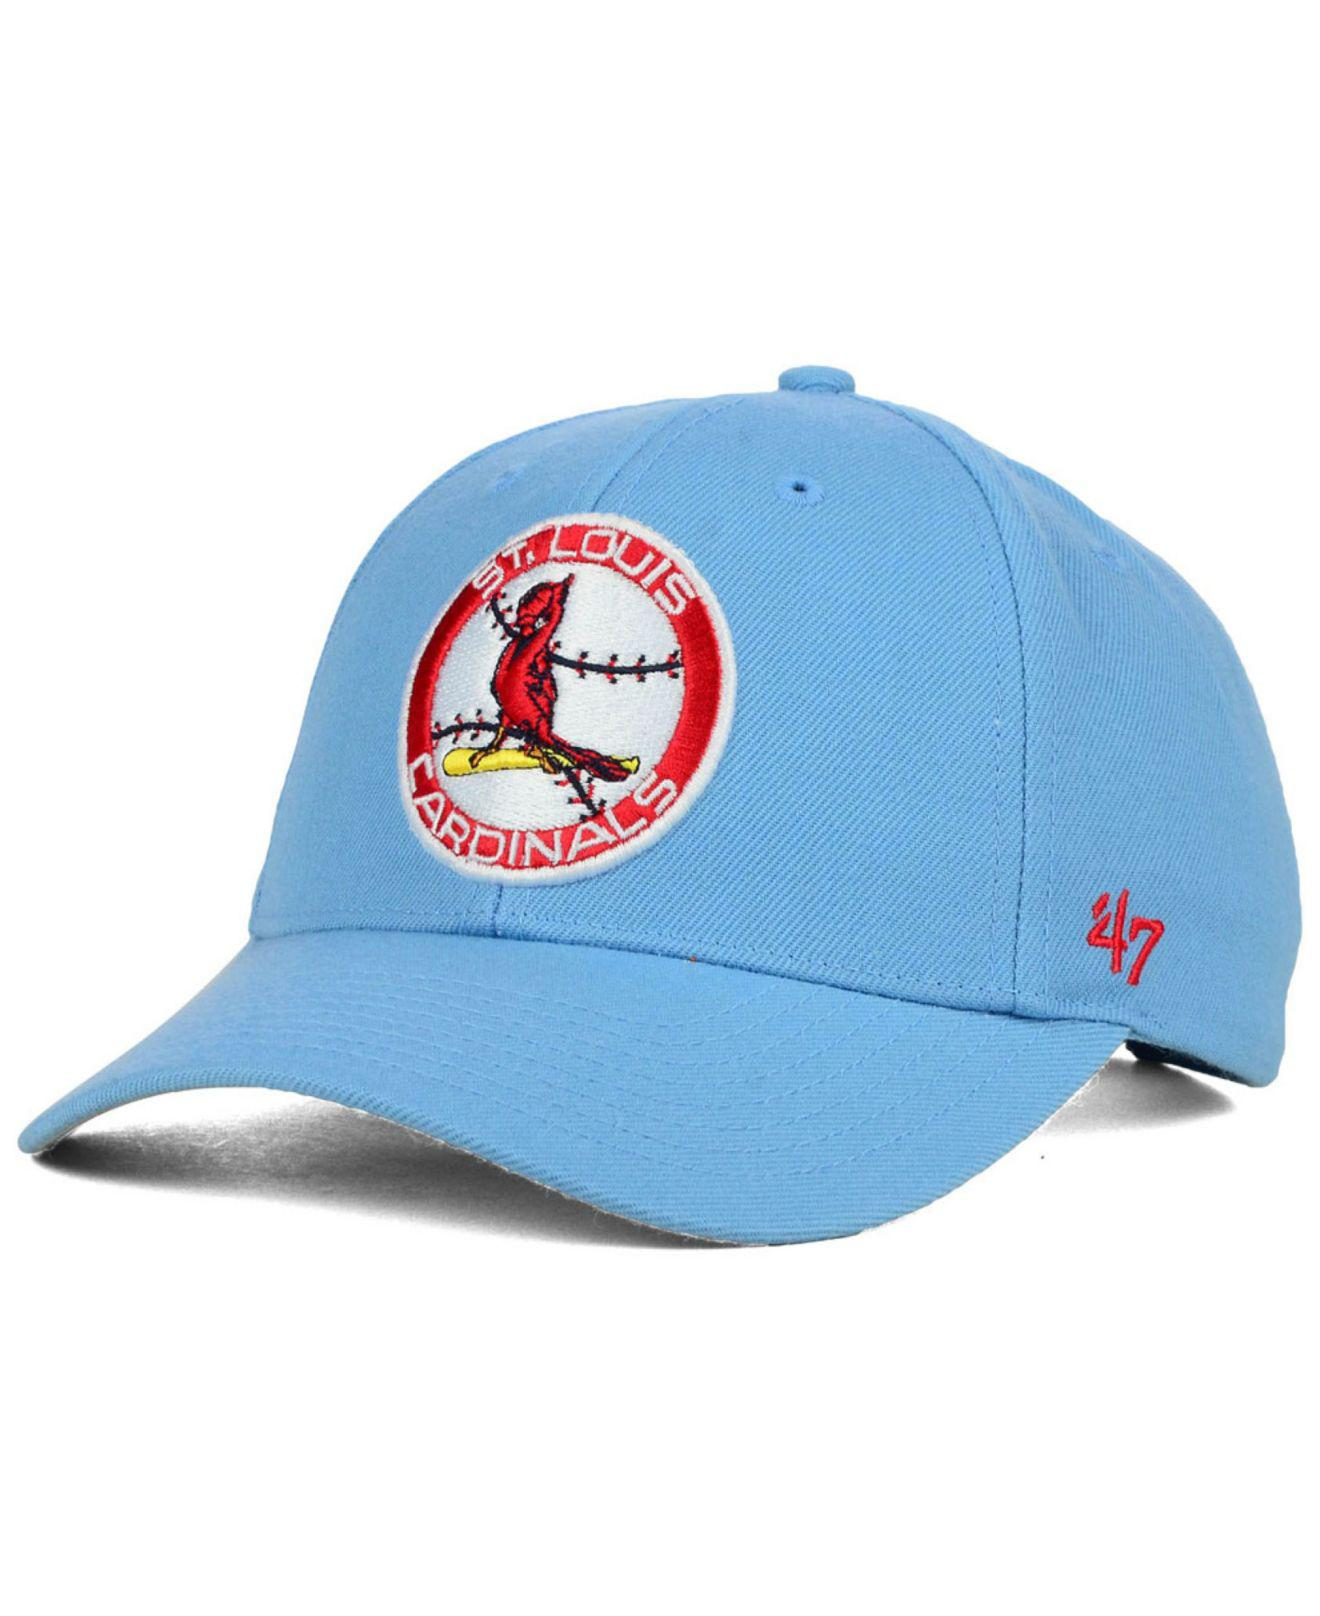 Lyst 47 Brand St Louis Cardinals Mvp Curved Cap In Blue For Men d7dc8c9d034